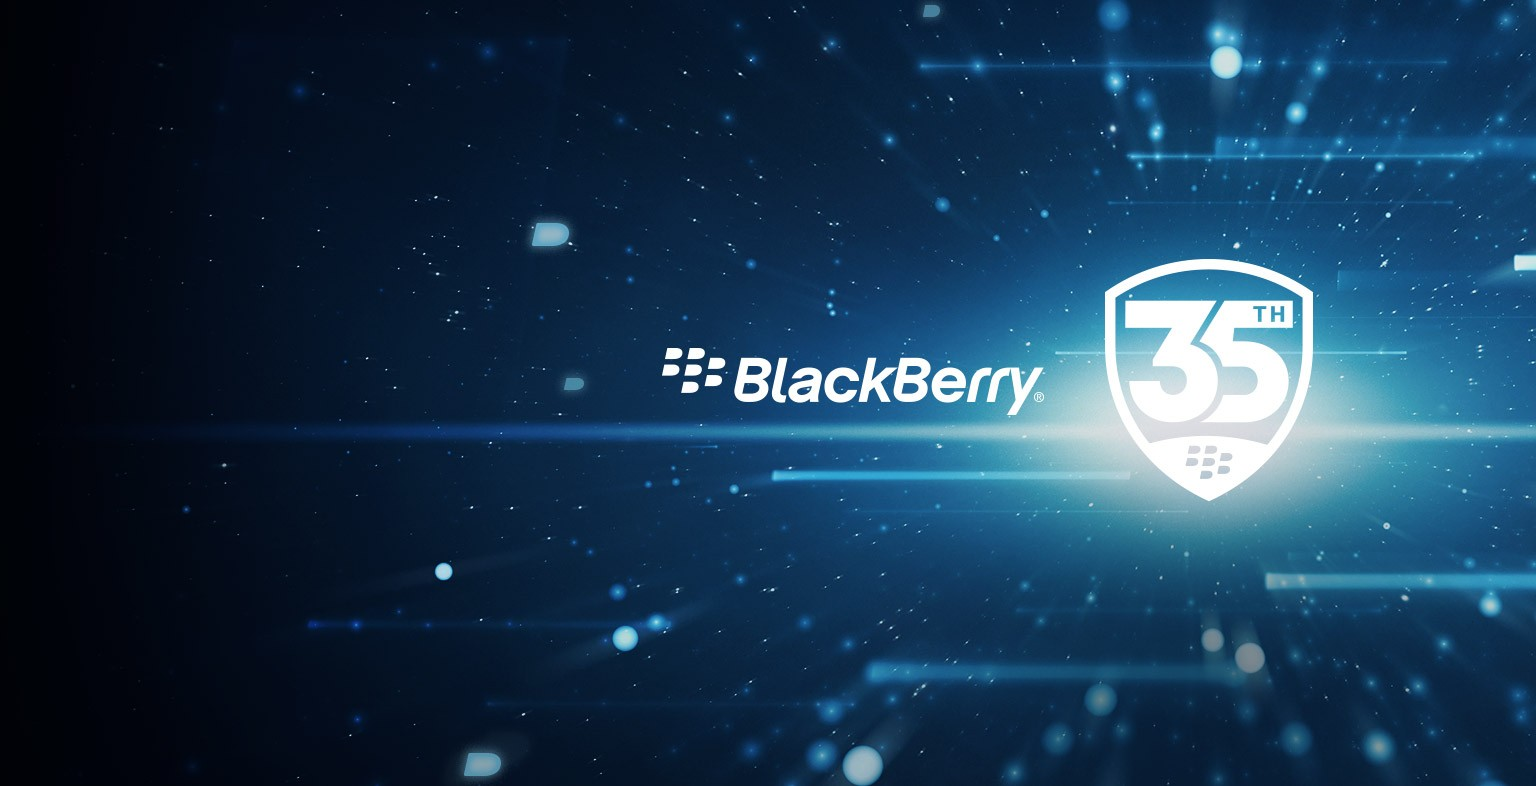 BlackBerry | LinkedIn